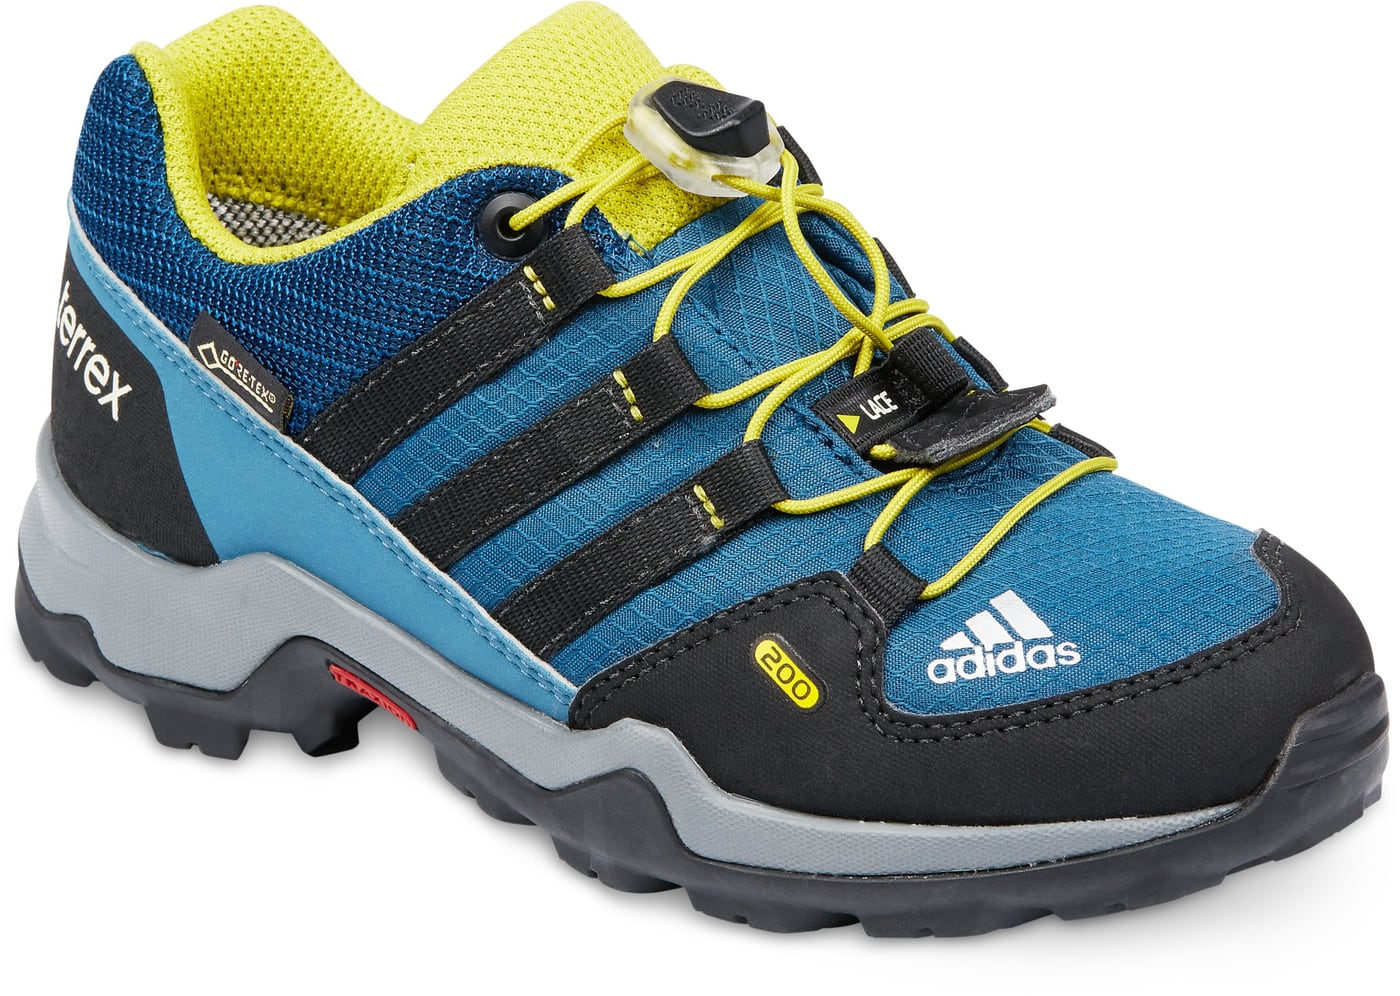 100% authentisch cf440 02dca Adidas Terrex GTX Kinder-Multifunktionsschuh